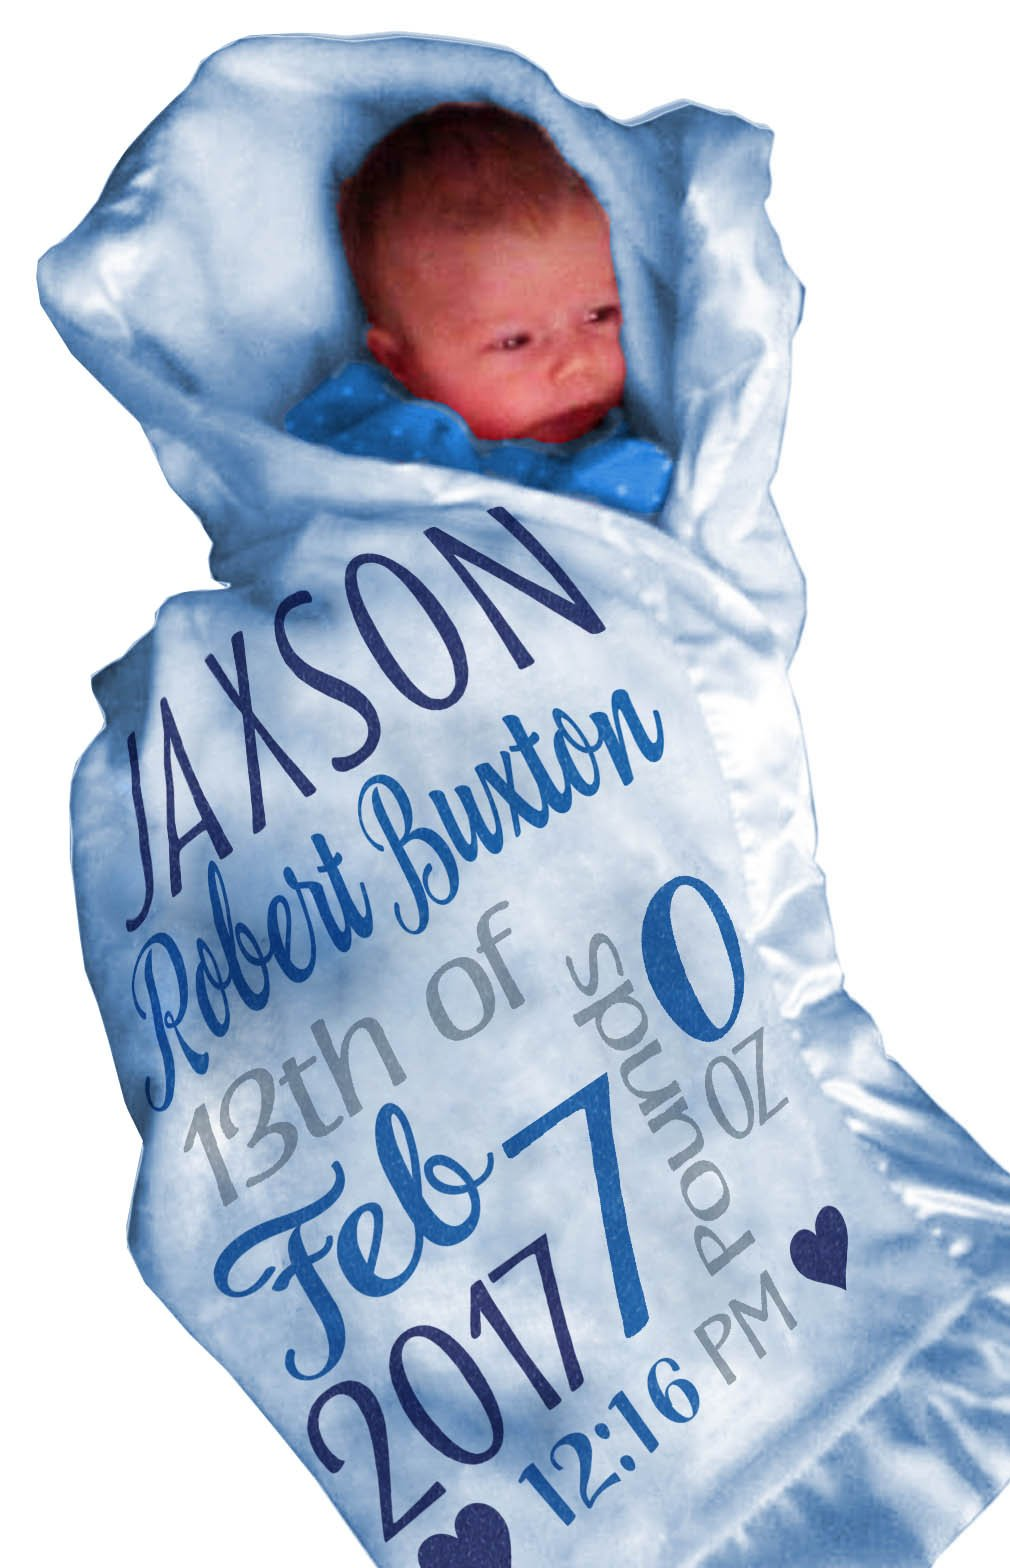 Personalized Baby Blankets for Boys (30x40, BLUE Micro Plush Fleece Satin Edge Trim) Custom With Baby's Name Special Gifts for Newborn Baby Room Nursery Christening or Baptism